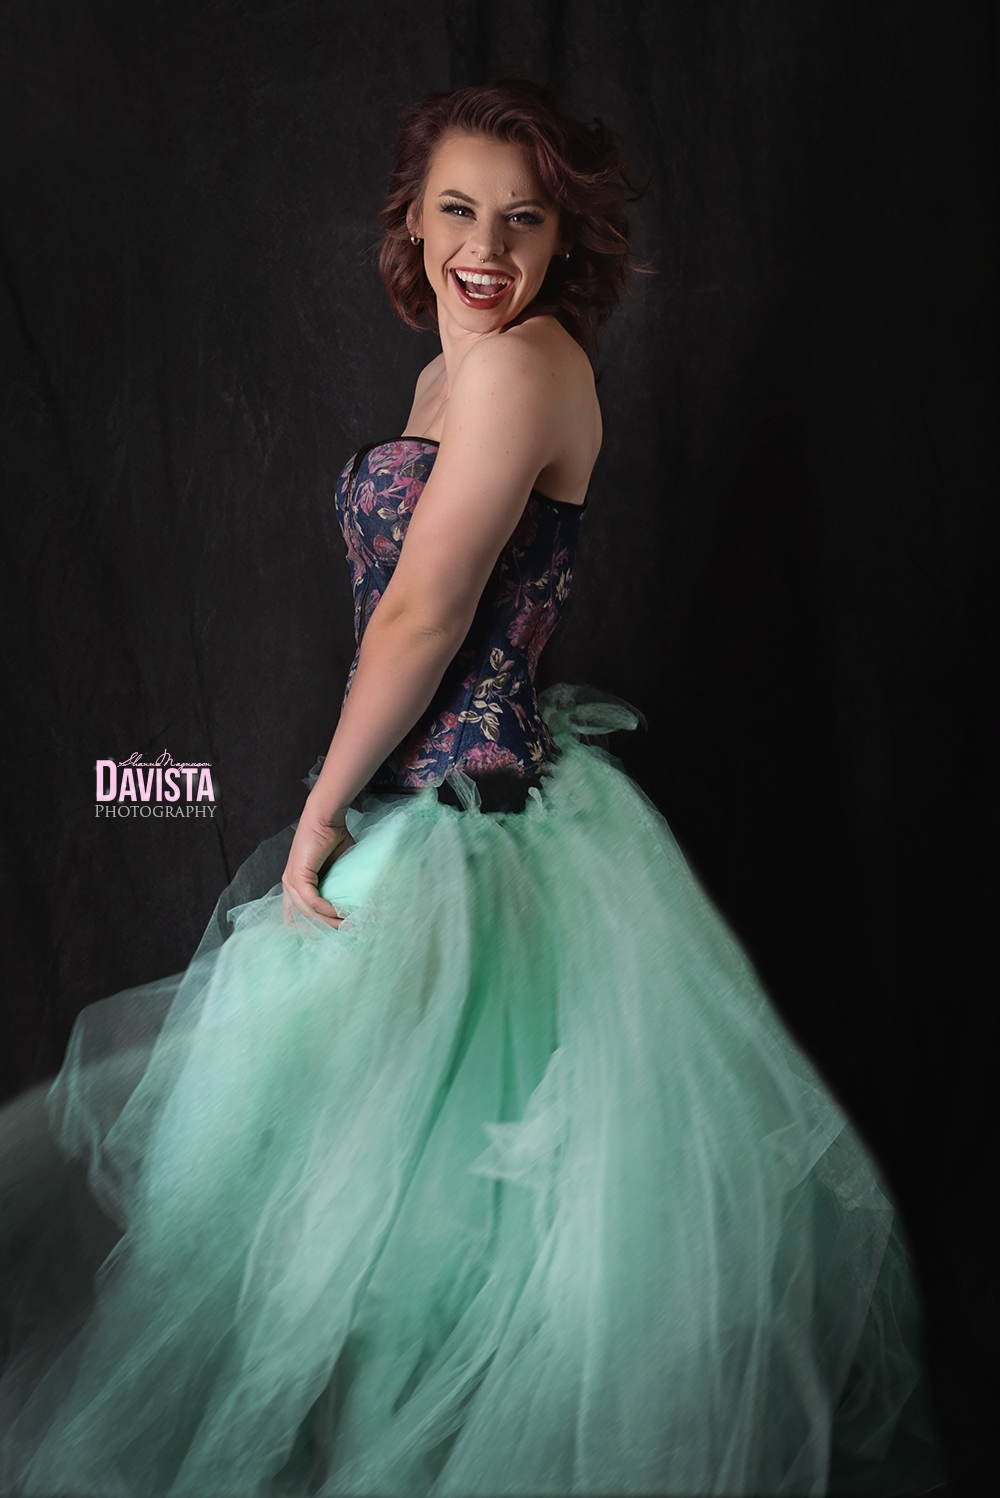 beautiful glamour tulle skirt portraits